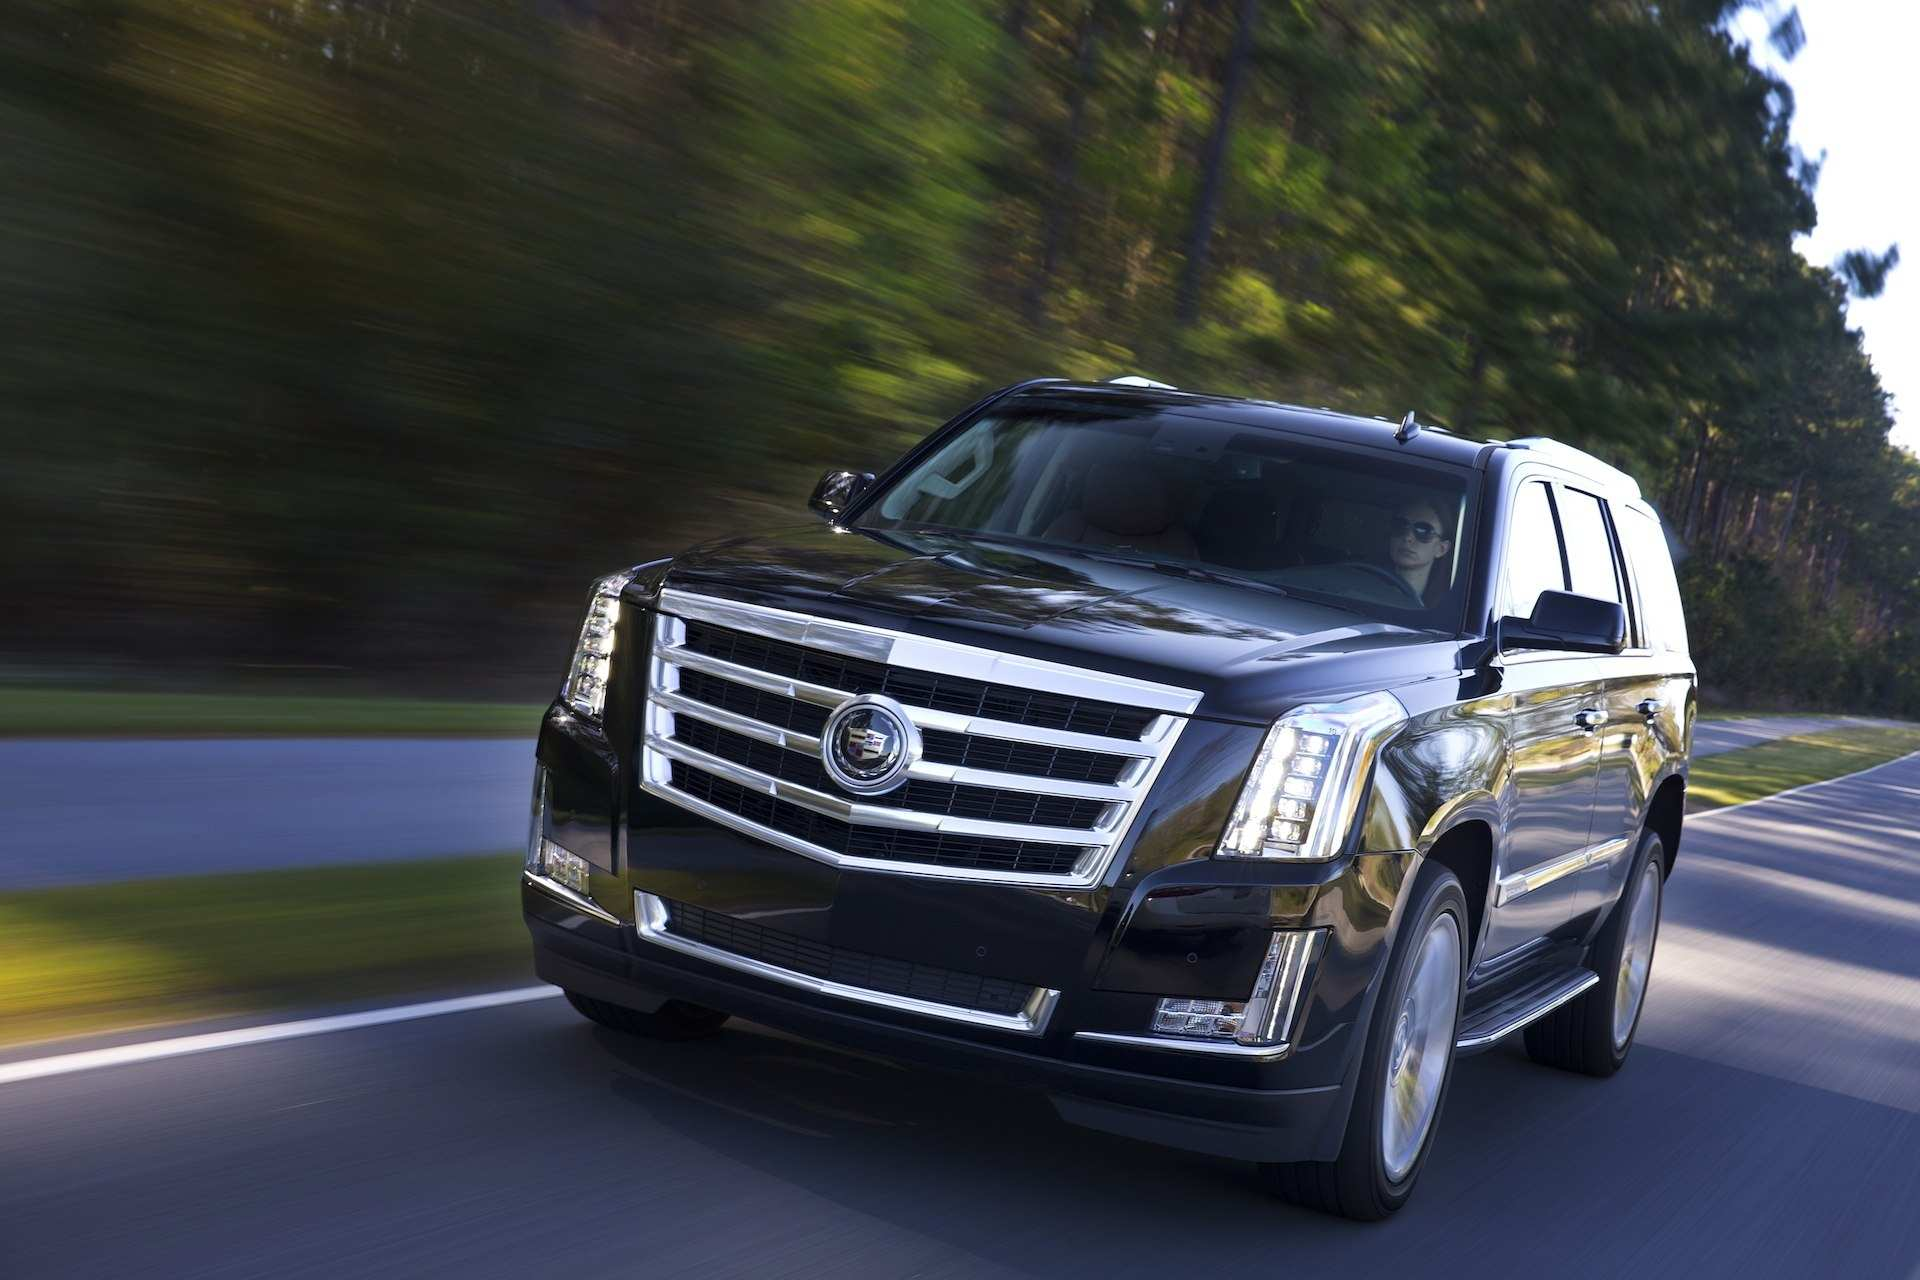 69 New 2020 Cadillac Escalade V Ext Esv Redesign by 2020 Cadillac Escalade V Ext Esv